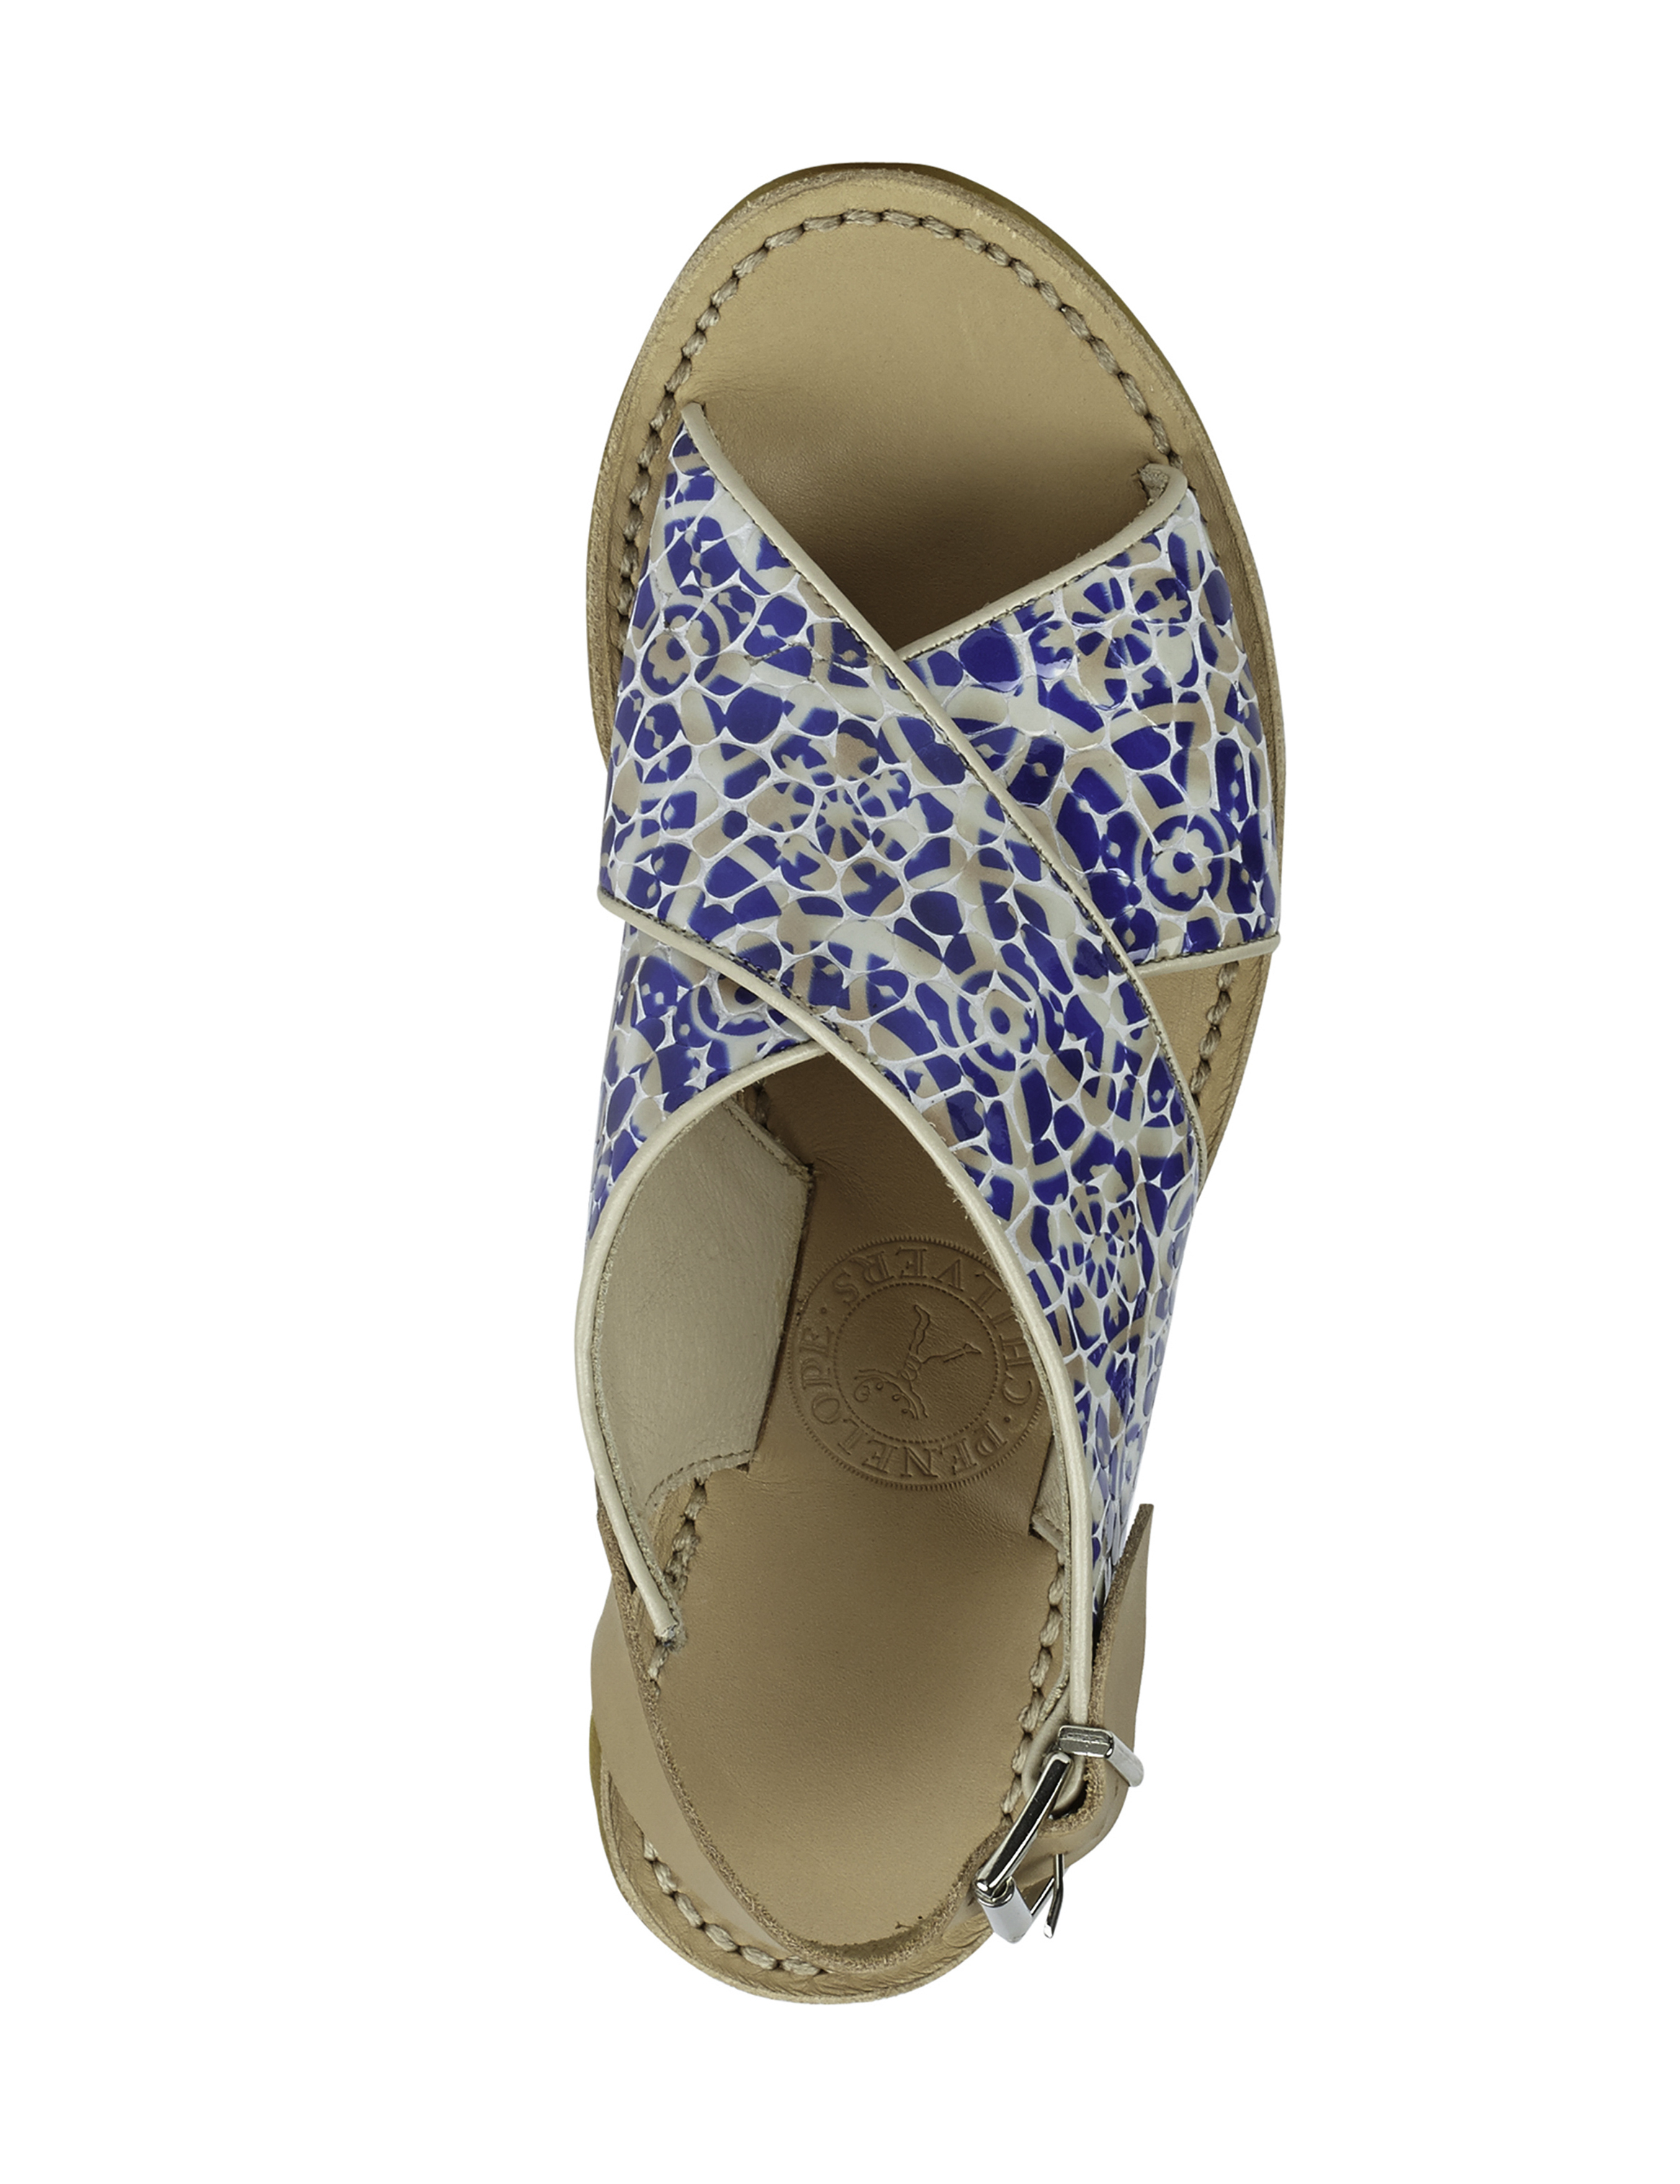 MAX ALHAMBRA BLUE WHITE sandals9 copy